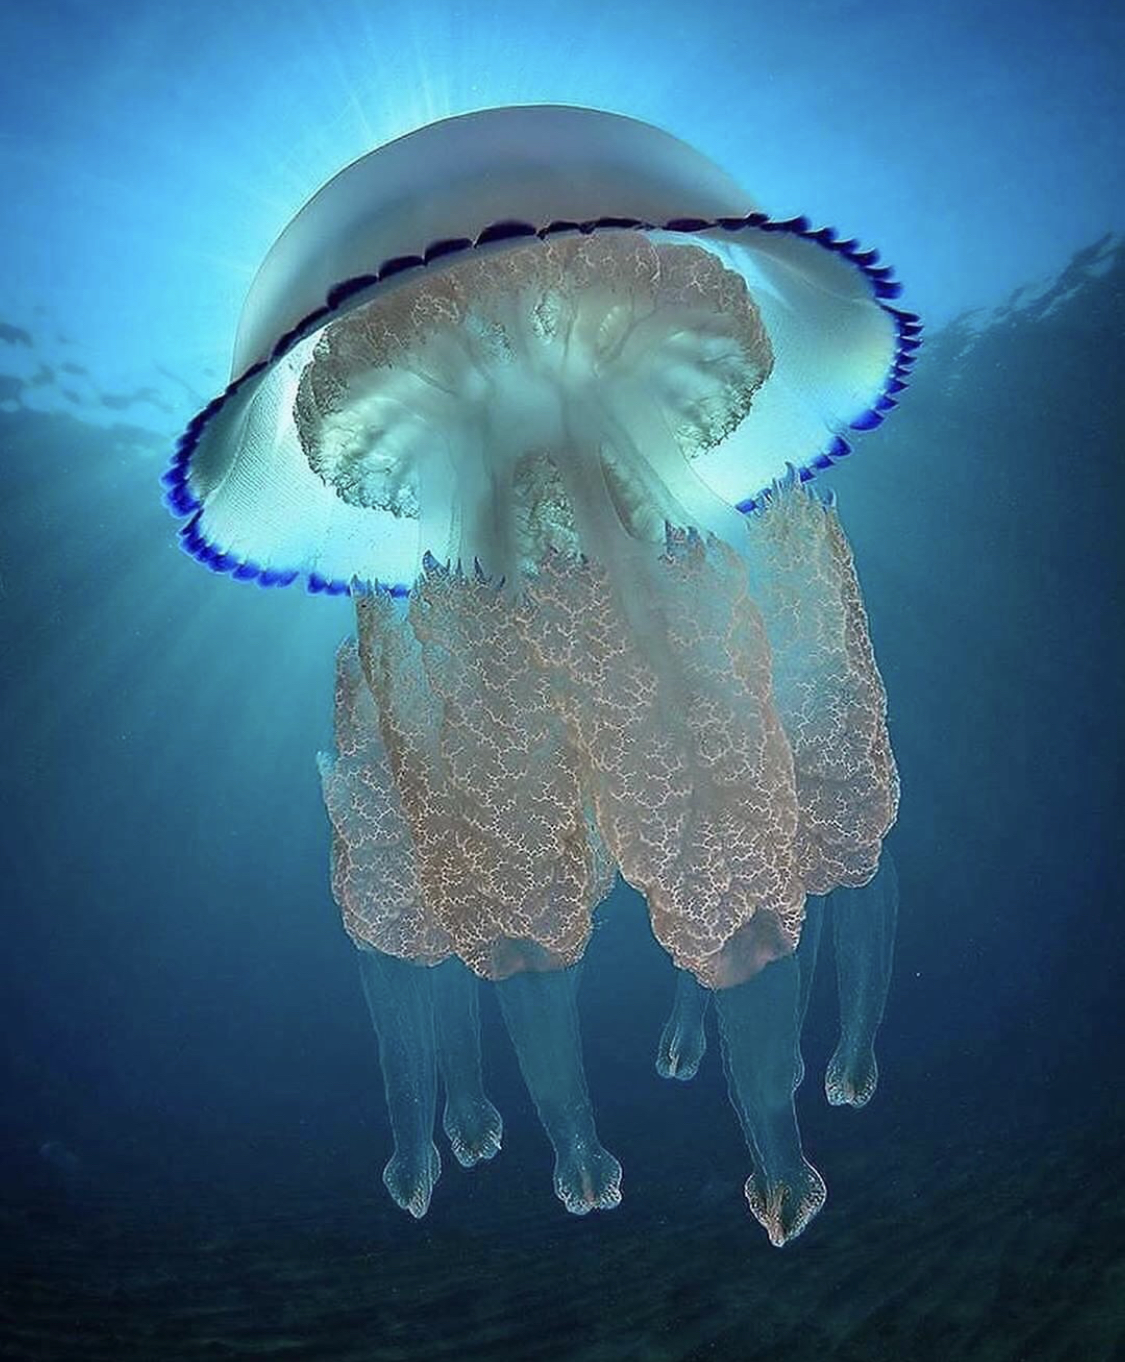 The incredibly stunning and dangerous barrel jelly fish in the ocean